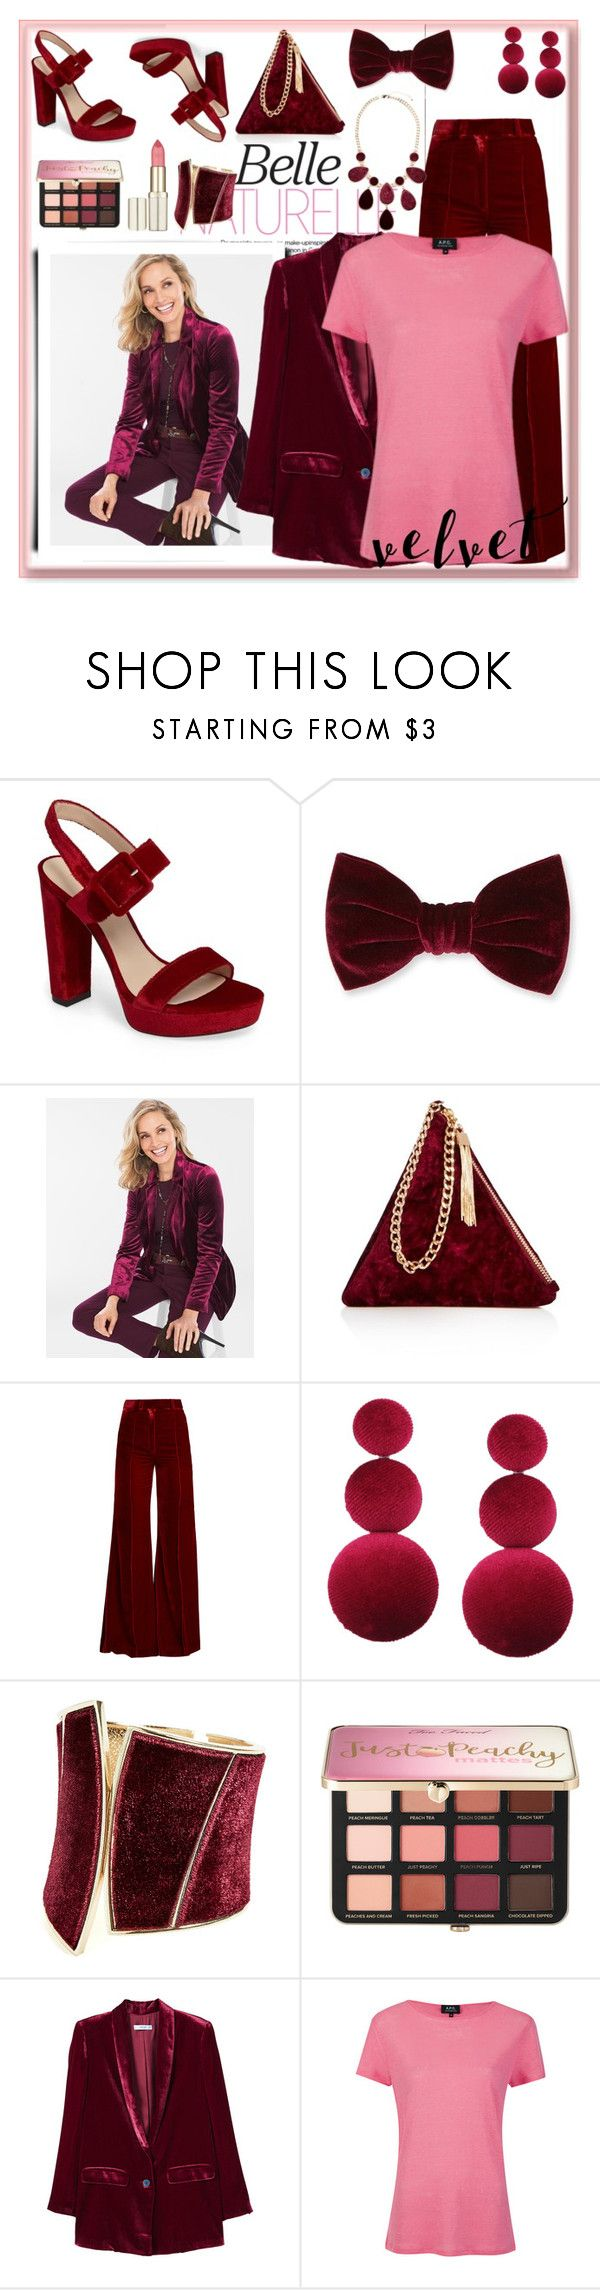 """""""Crushing on Velvet"""" by nefertiti1373 ❤ liked on Polyvore featuring Pelle Moda, Forever 21, Chico's, Street Level, Racil, GUESS by Marciano, Sephora Collection, MANGO, A.P.C. and velvet"""